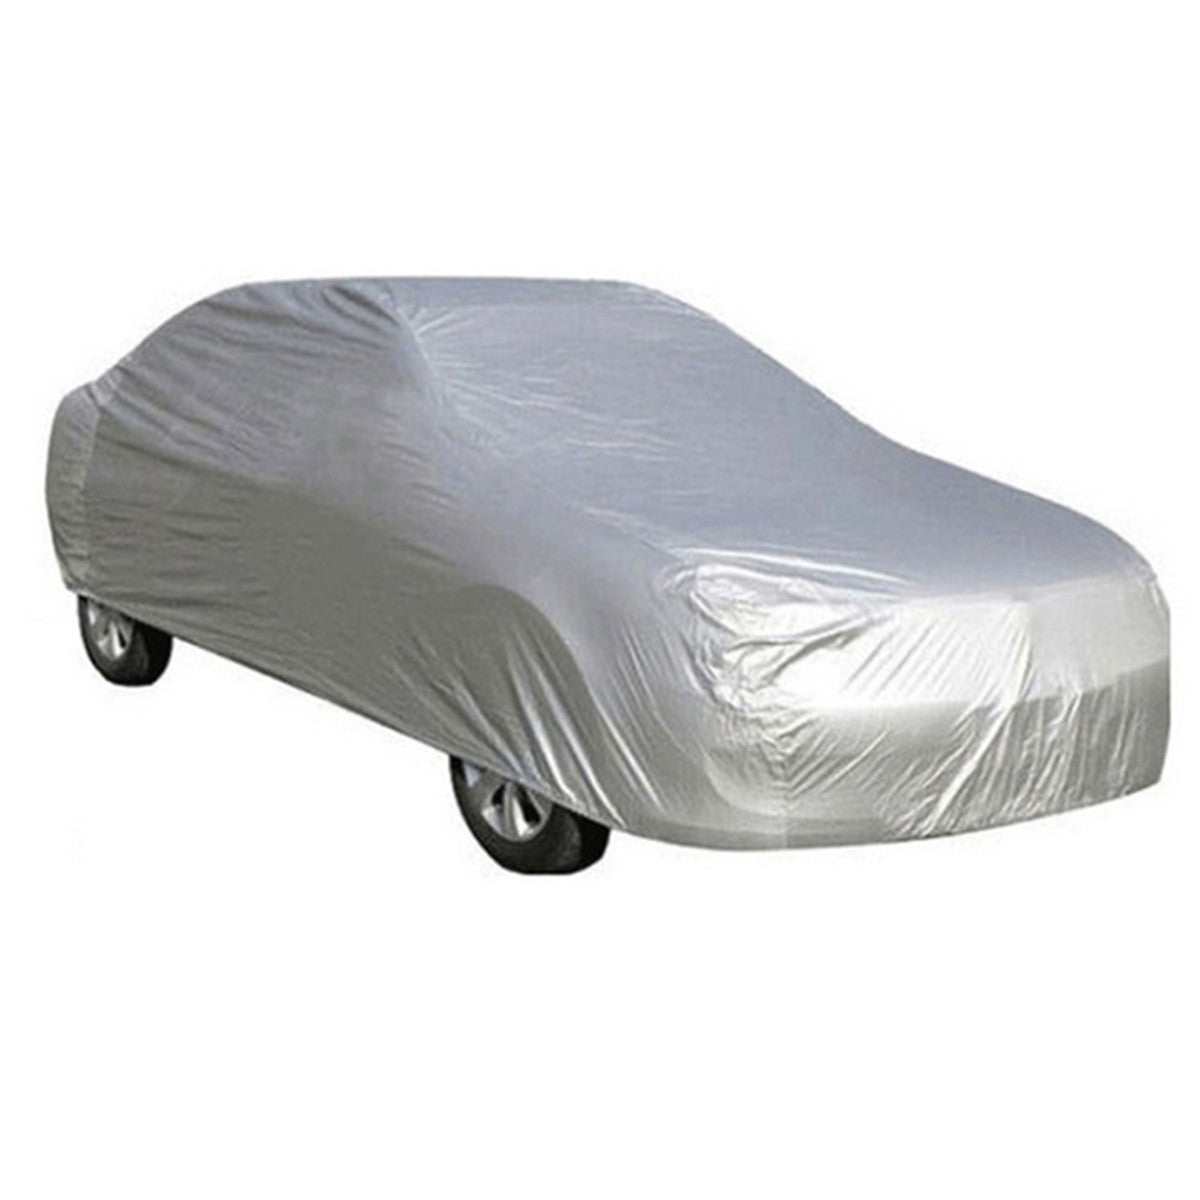 Waterproof Indoor/Outdoor Protective Car/Furniture Cover